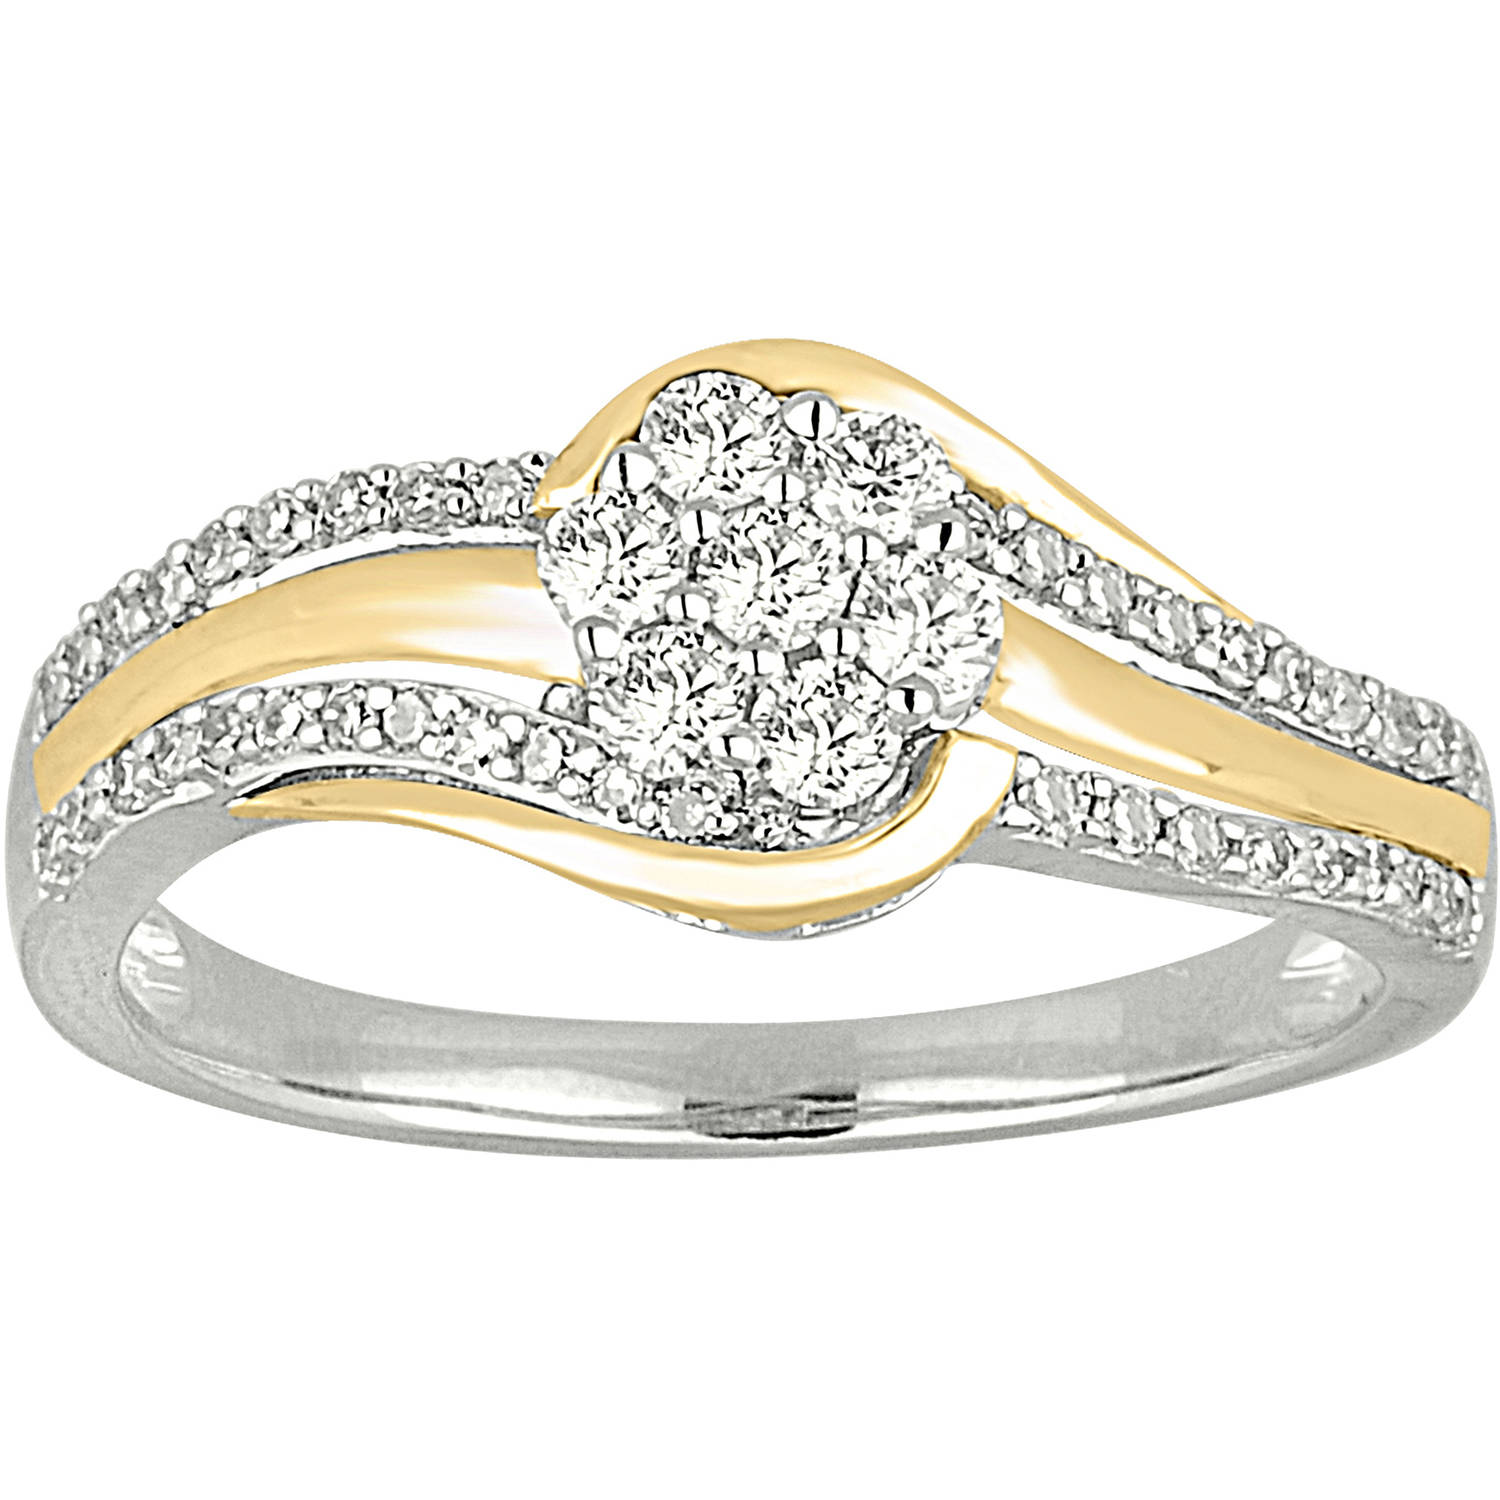 1/2 Carat T.W. Diamond 10kt Two-Tone Gold Ring